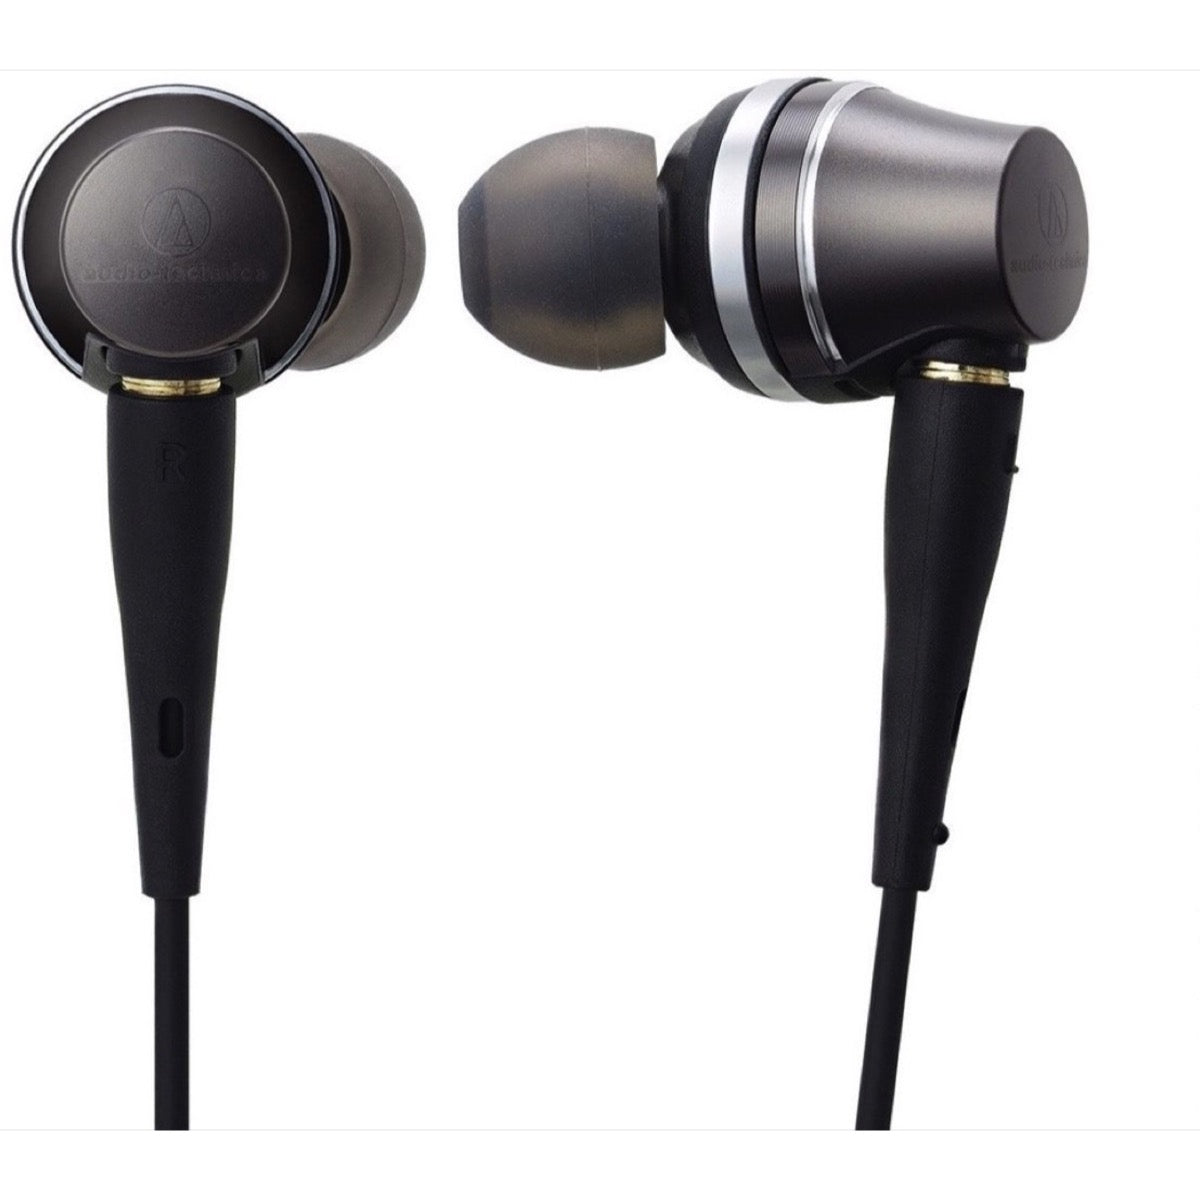 Audio-Technica ATH-CKR90iS Sound Reality In-Ear High-Resolution Headphones